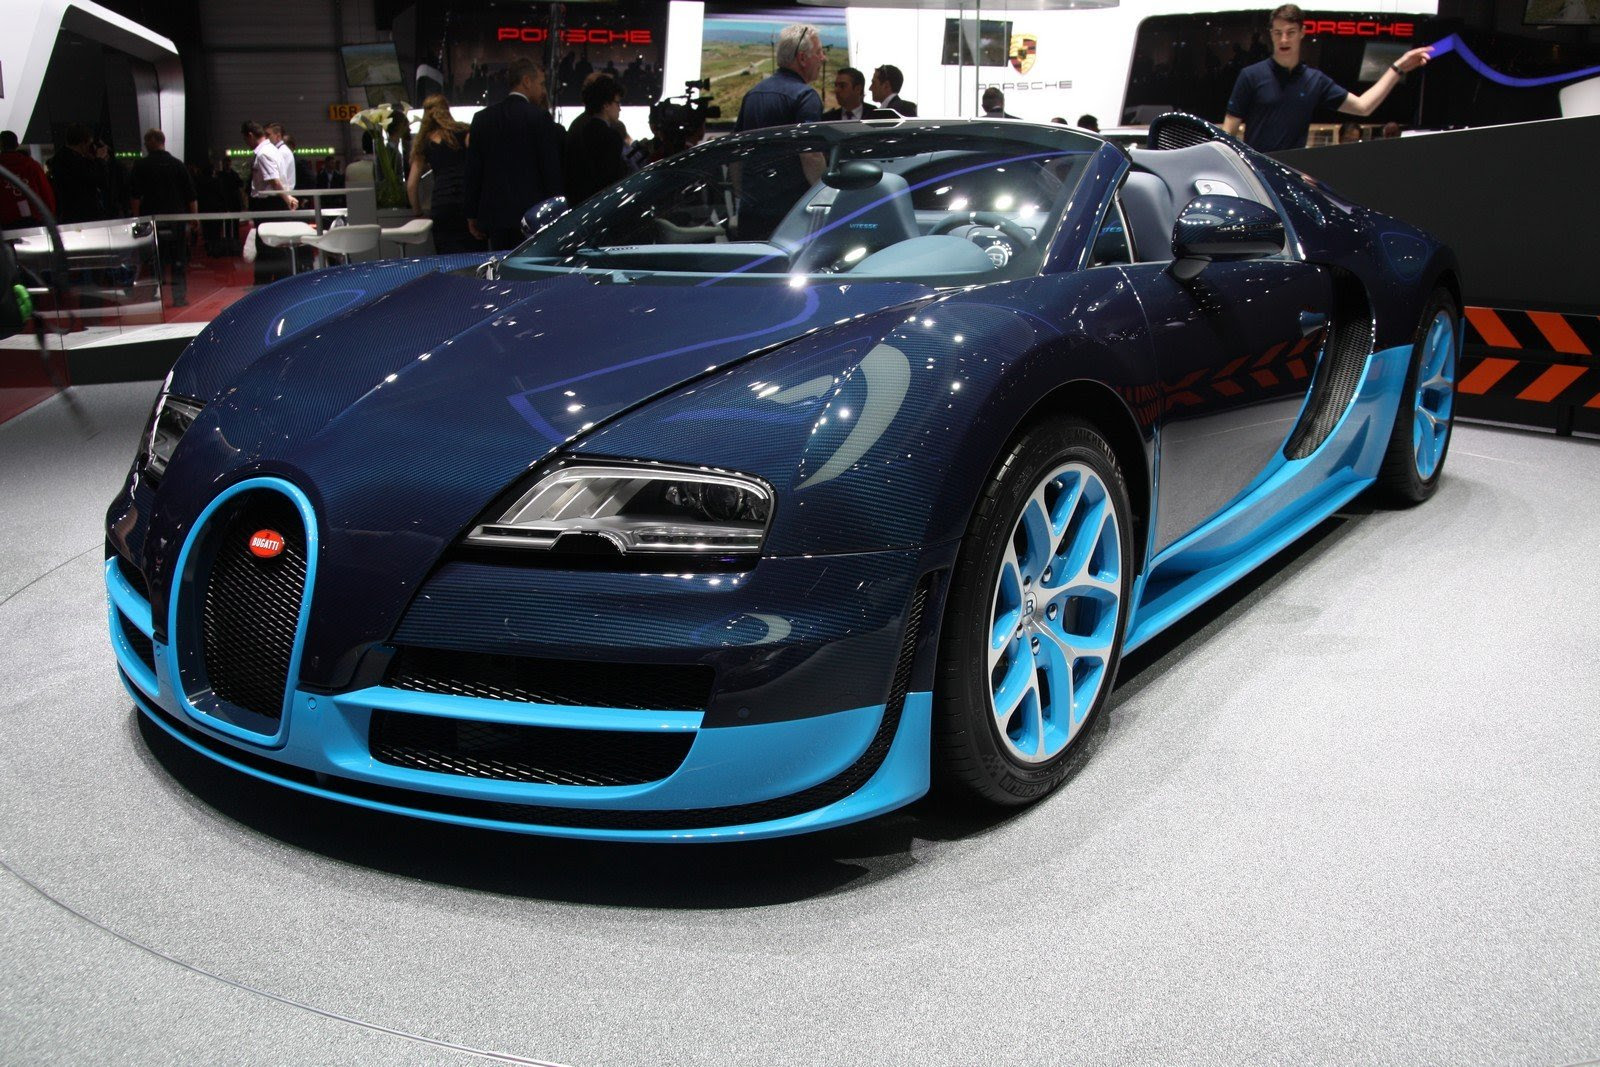 2012 Bugatti Veyron Grand Sport Vitesse - Picture 441490 | car review @ Top Speed